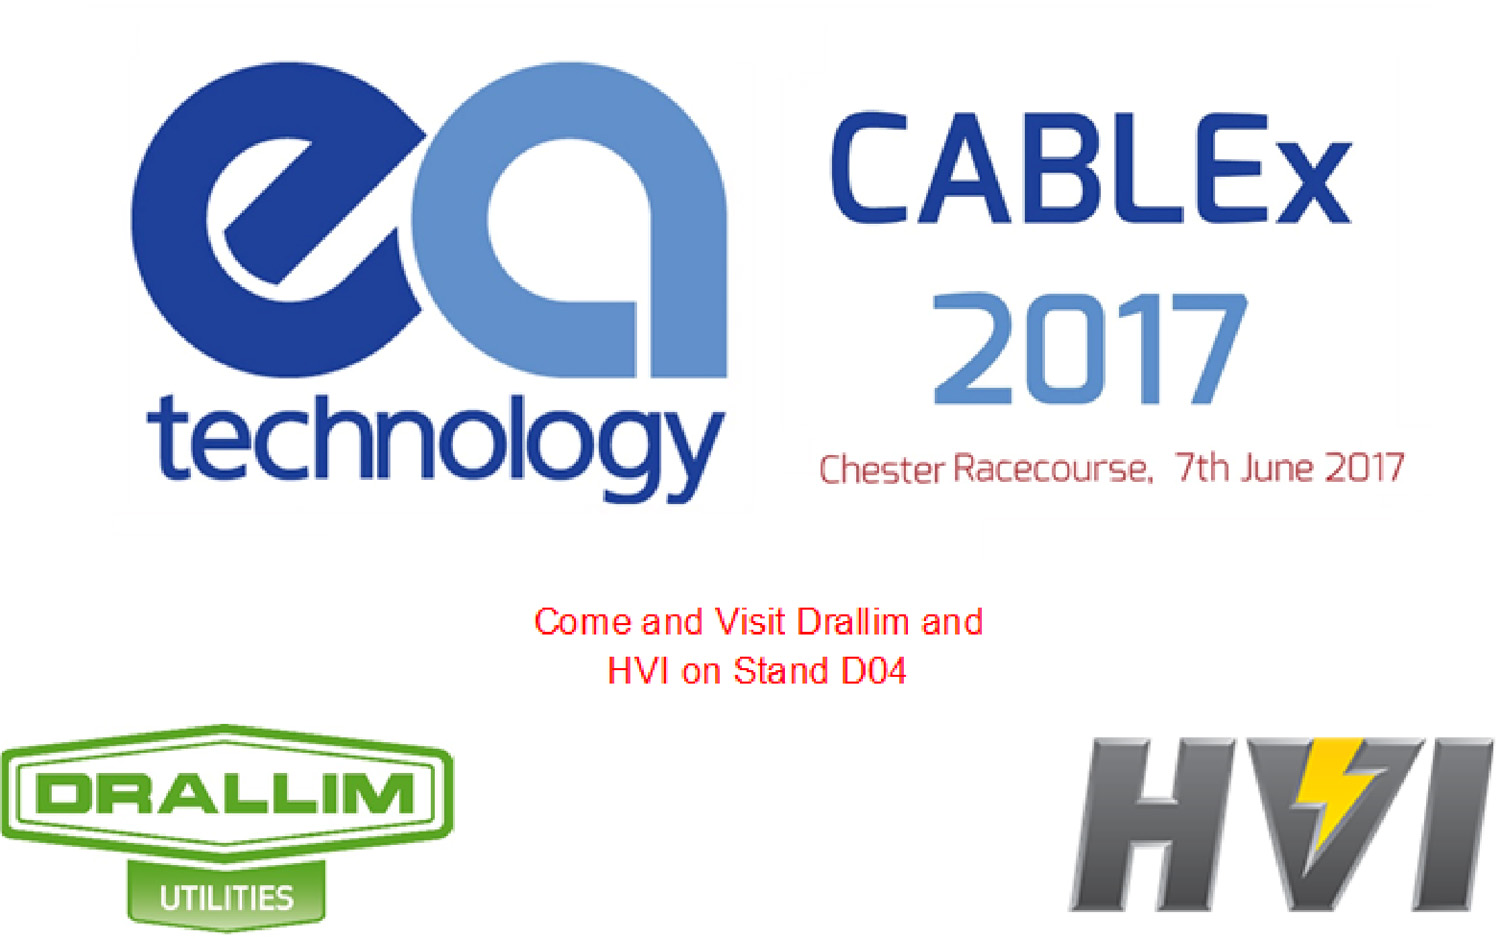 Power Interpower Cord Sets Cords For The Global Market Drallim Industries And Hvi To Attend Cablex All Things Cables